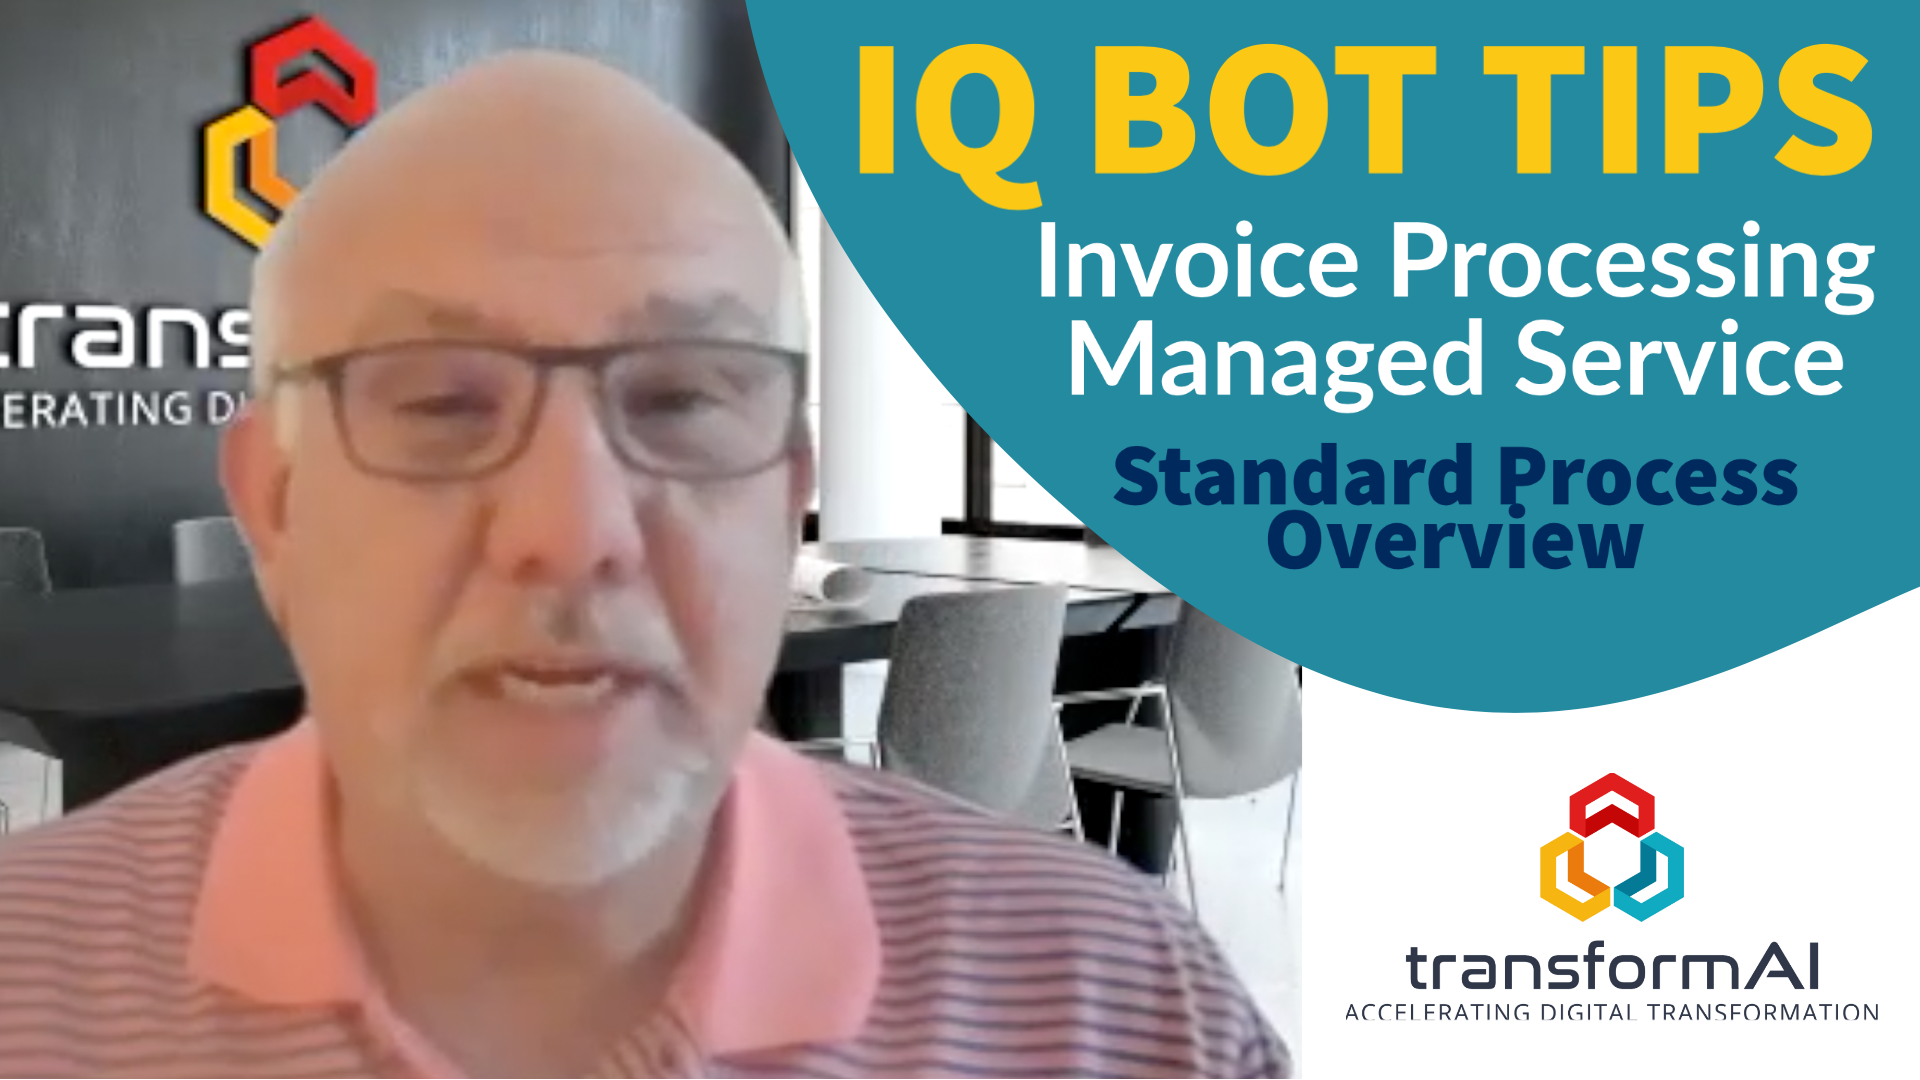 Automated Invoice Processing - Managed Service Process Overview